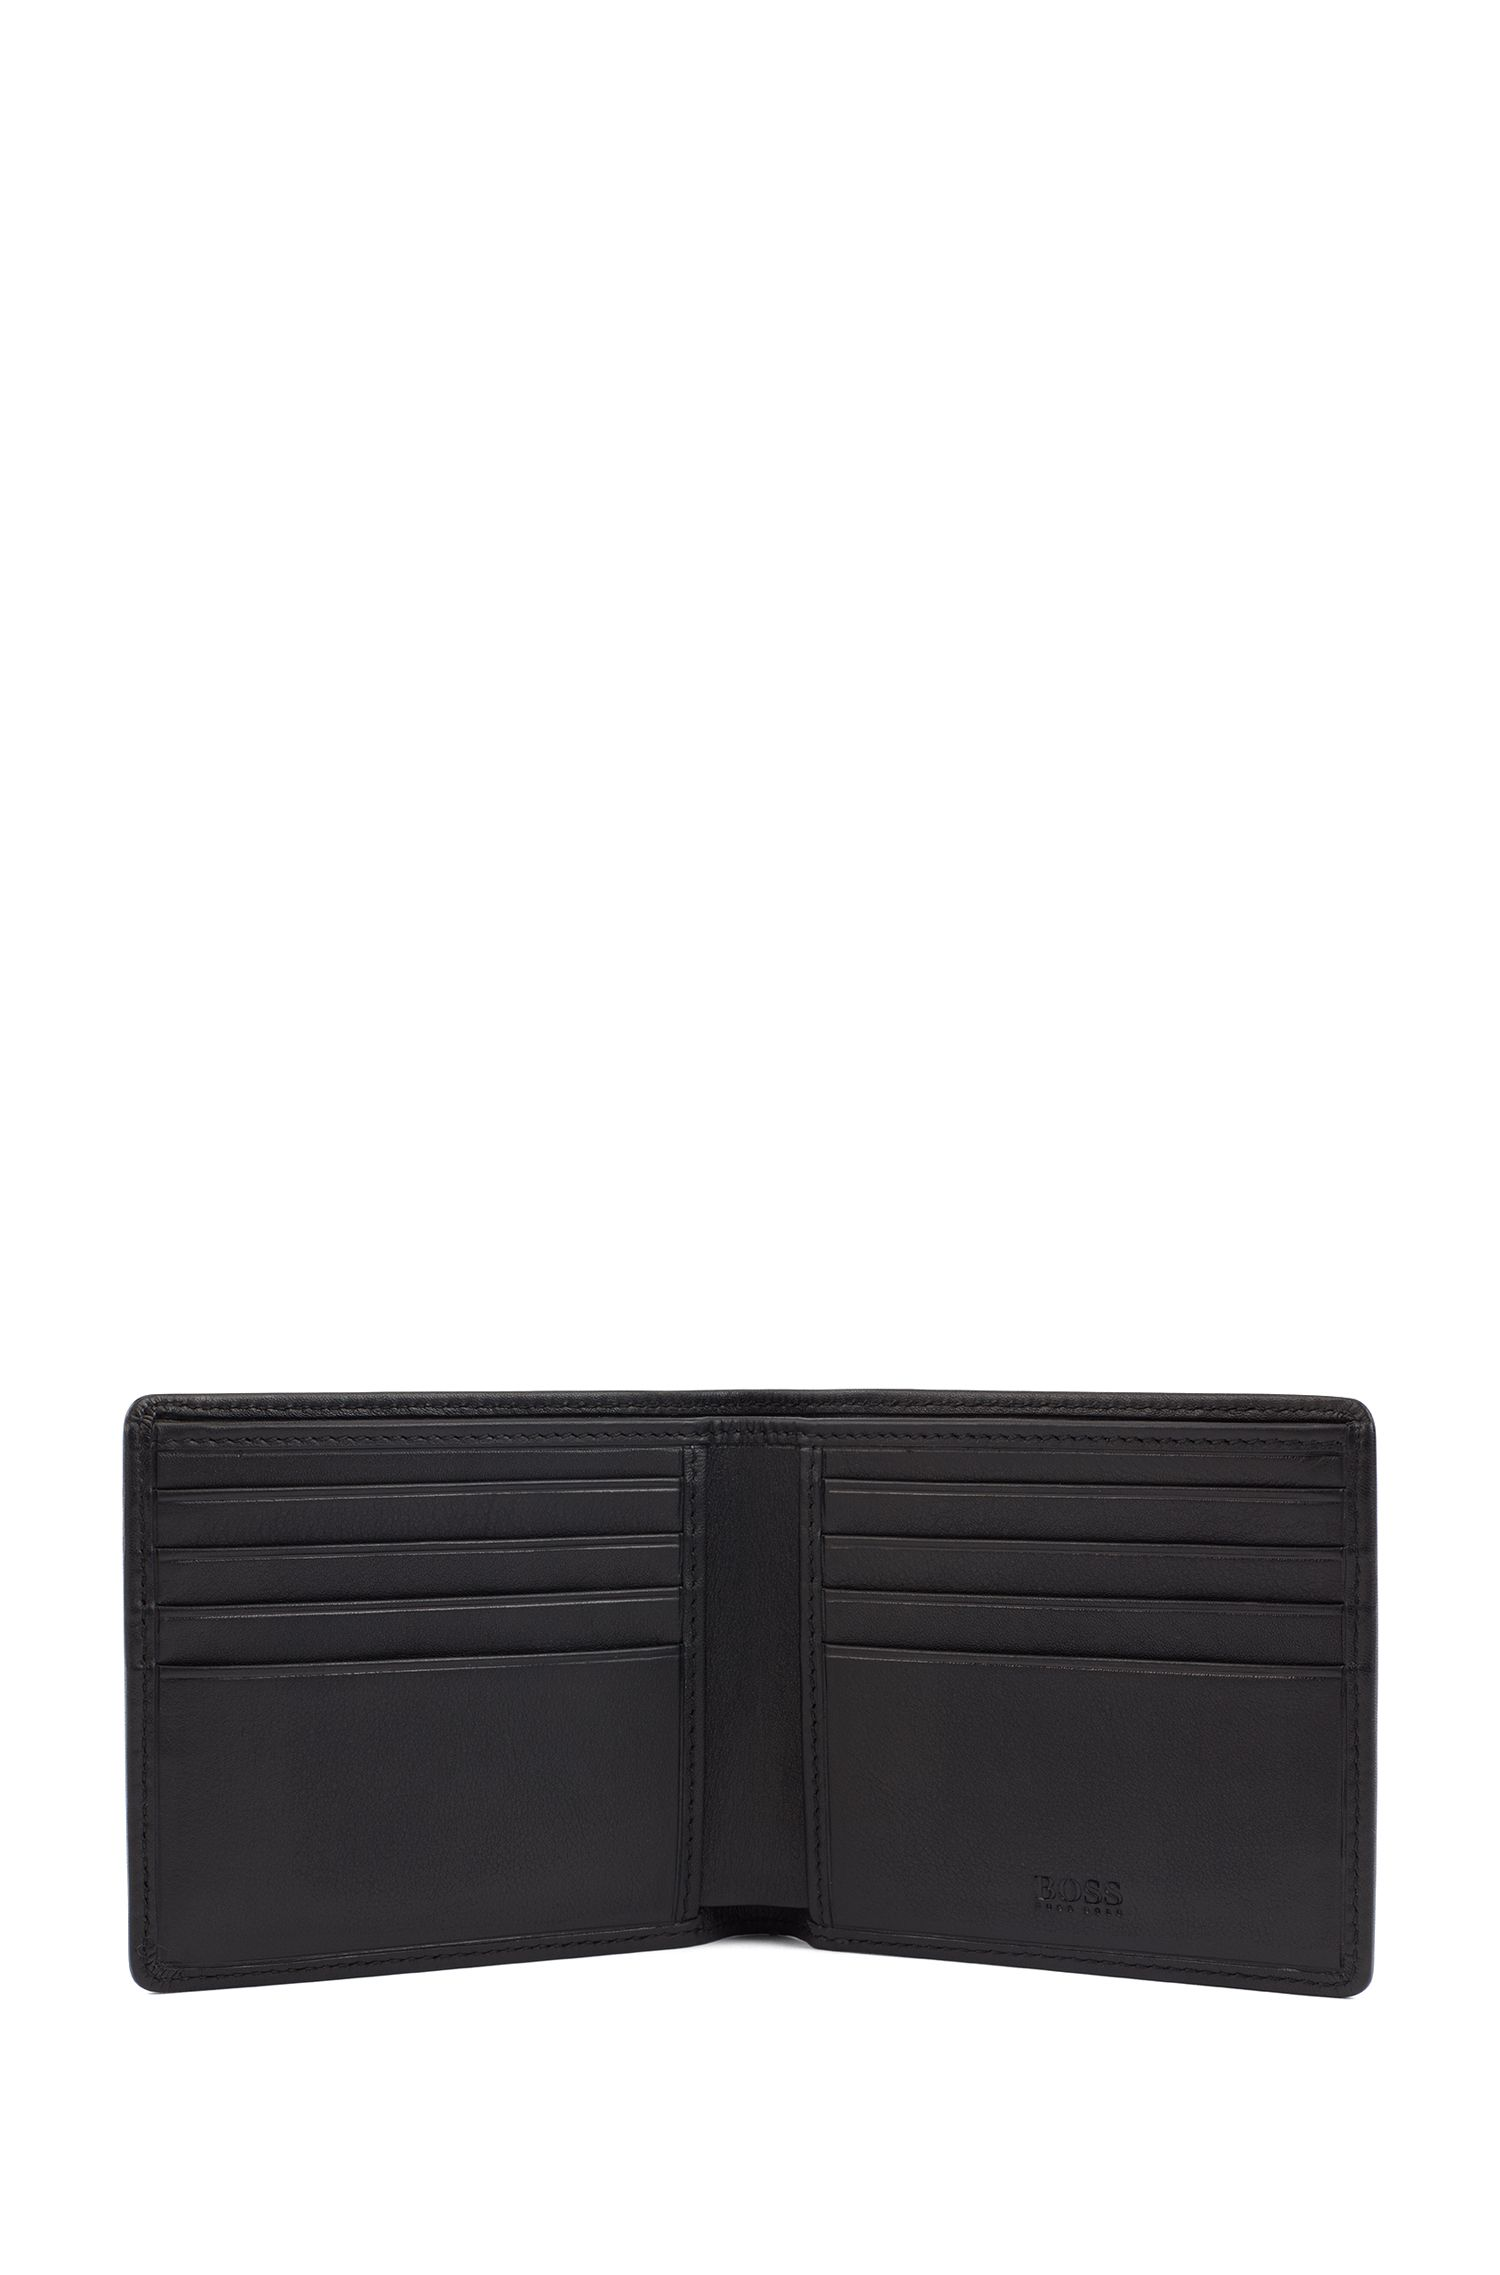 Leather billfold wallet and card holder gift set, Black